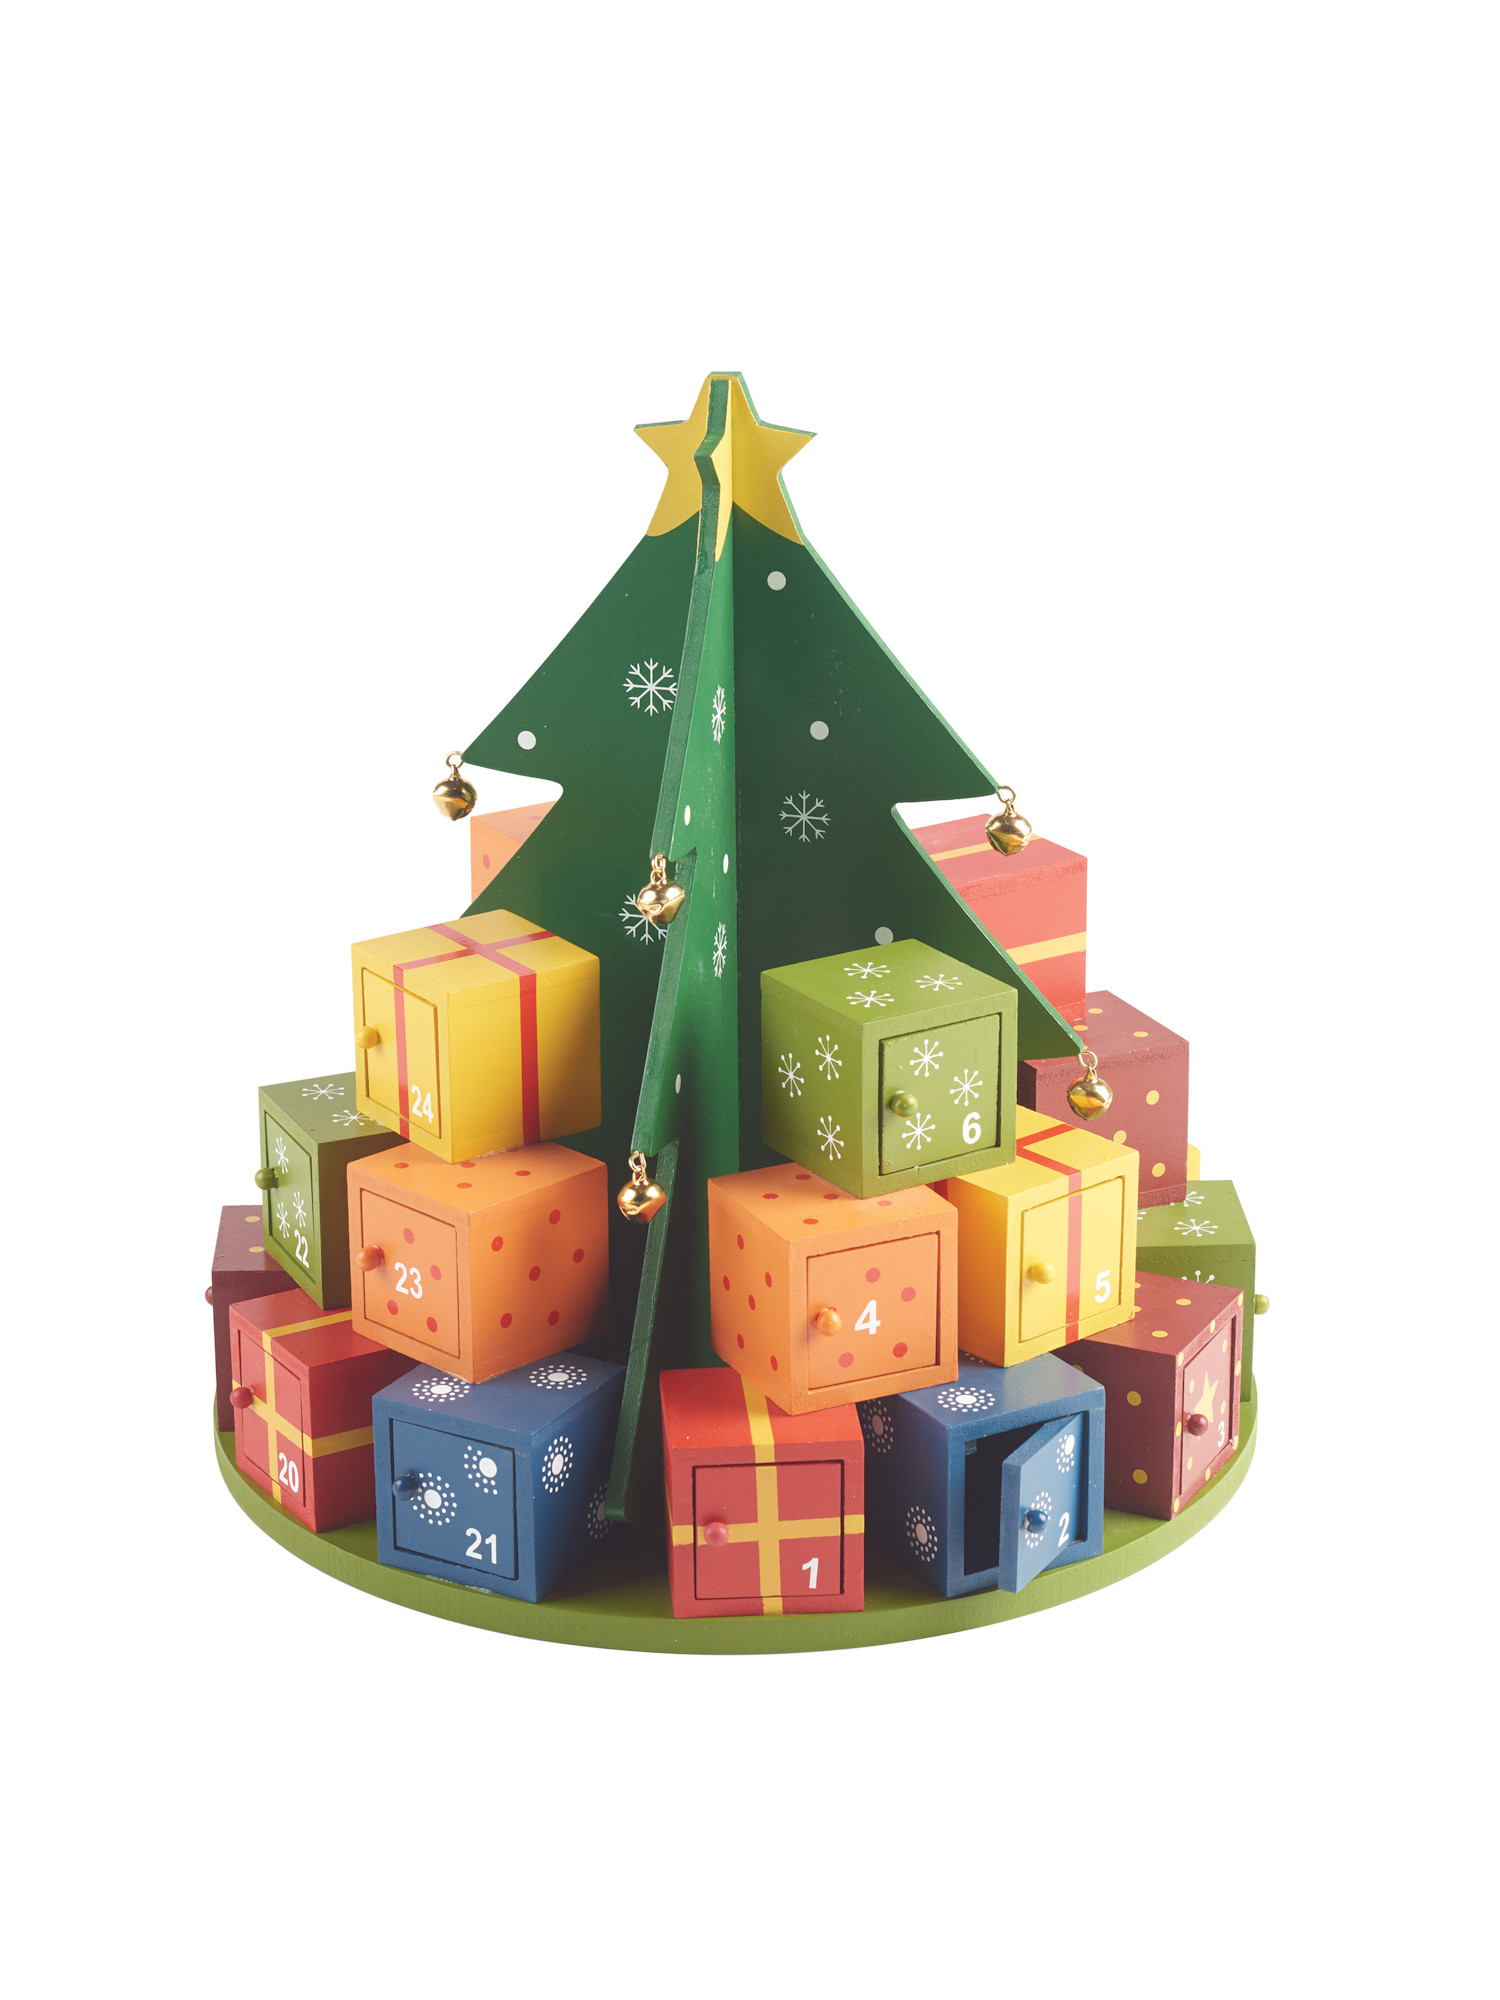 Art Artifact Christmas Tree Advent Calendar 3d Wooden Stand Up Christmas Countdown Evergreen Tree With 24 Numbered Gift Boxes Holiday Home Decor Walmart Com Walmart Com